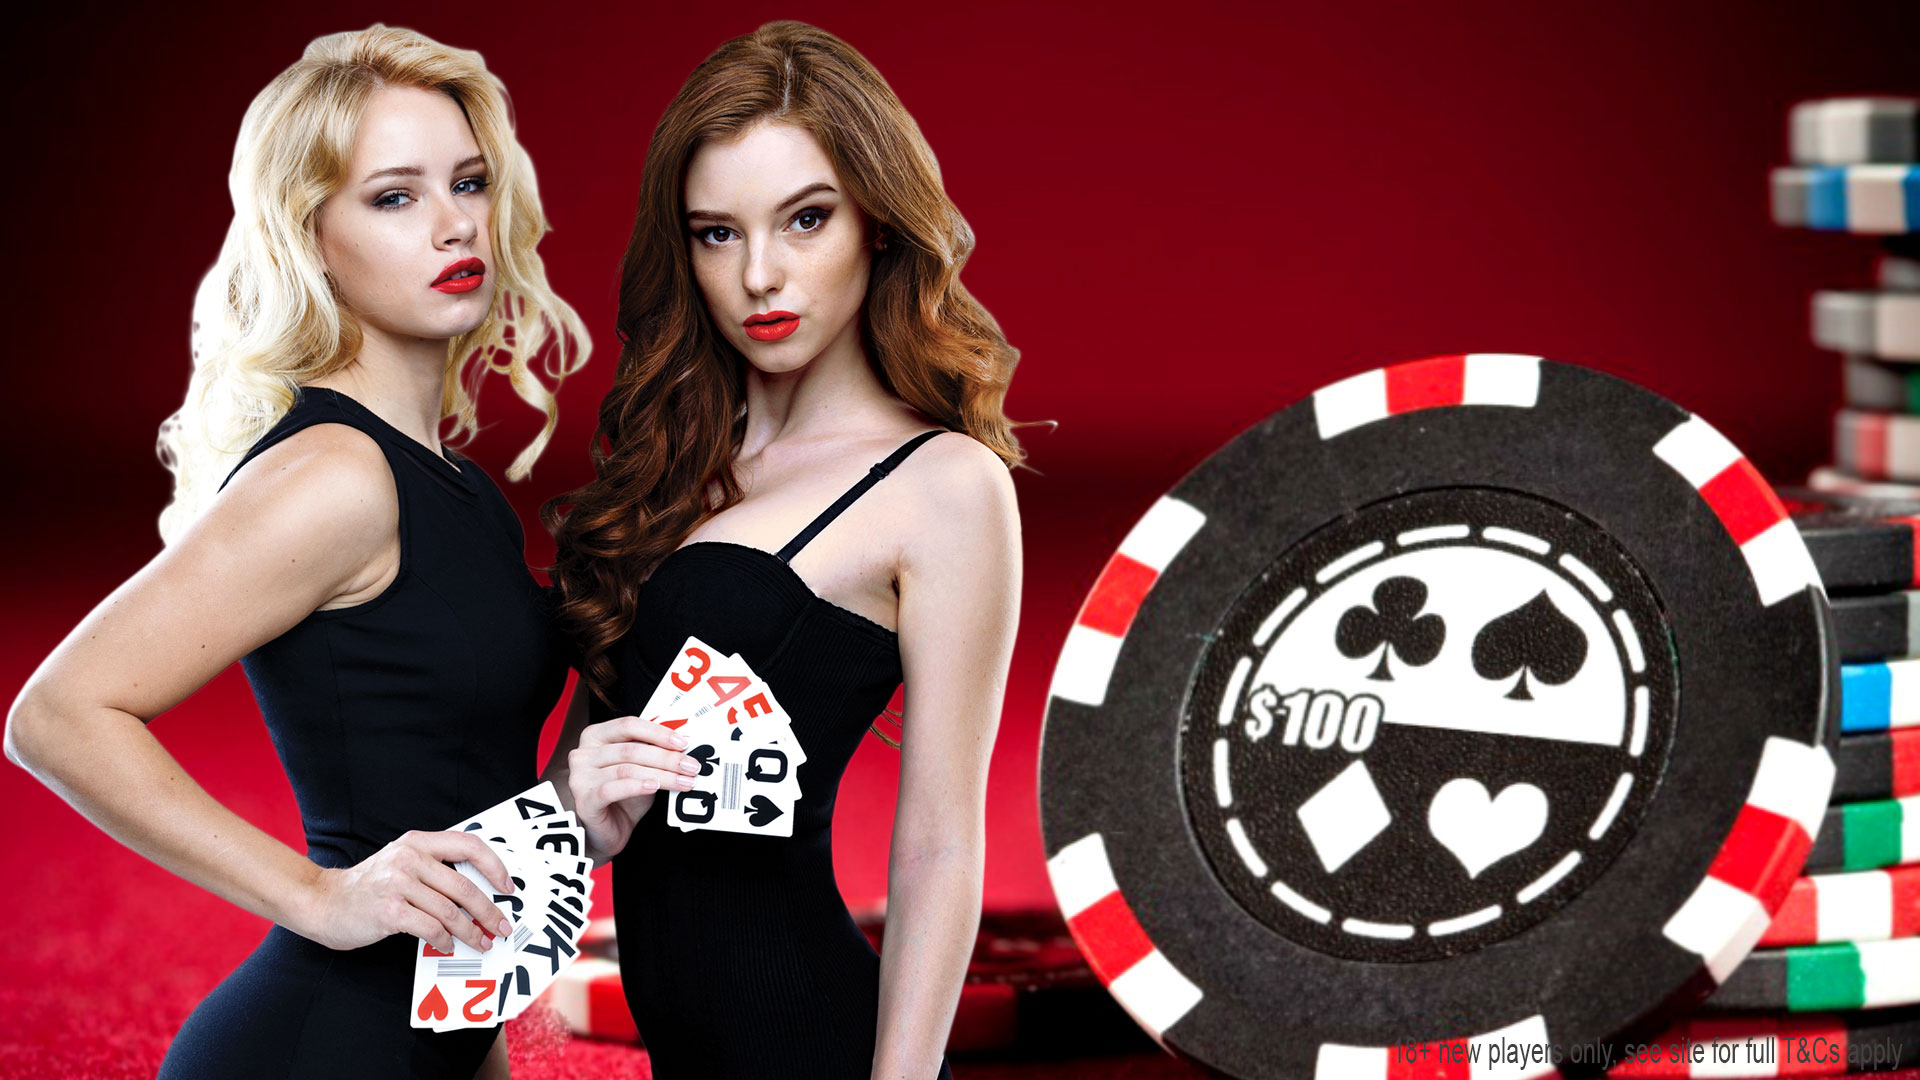 New slot sites no deposit required can be fun for everyone